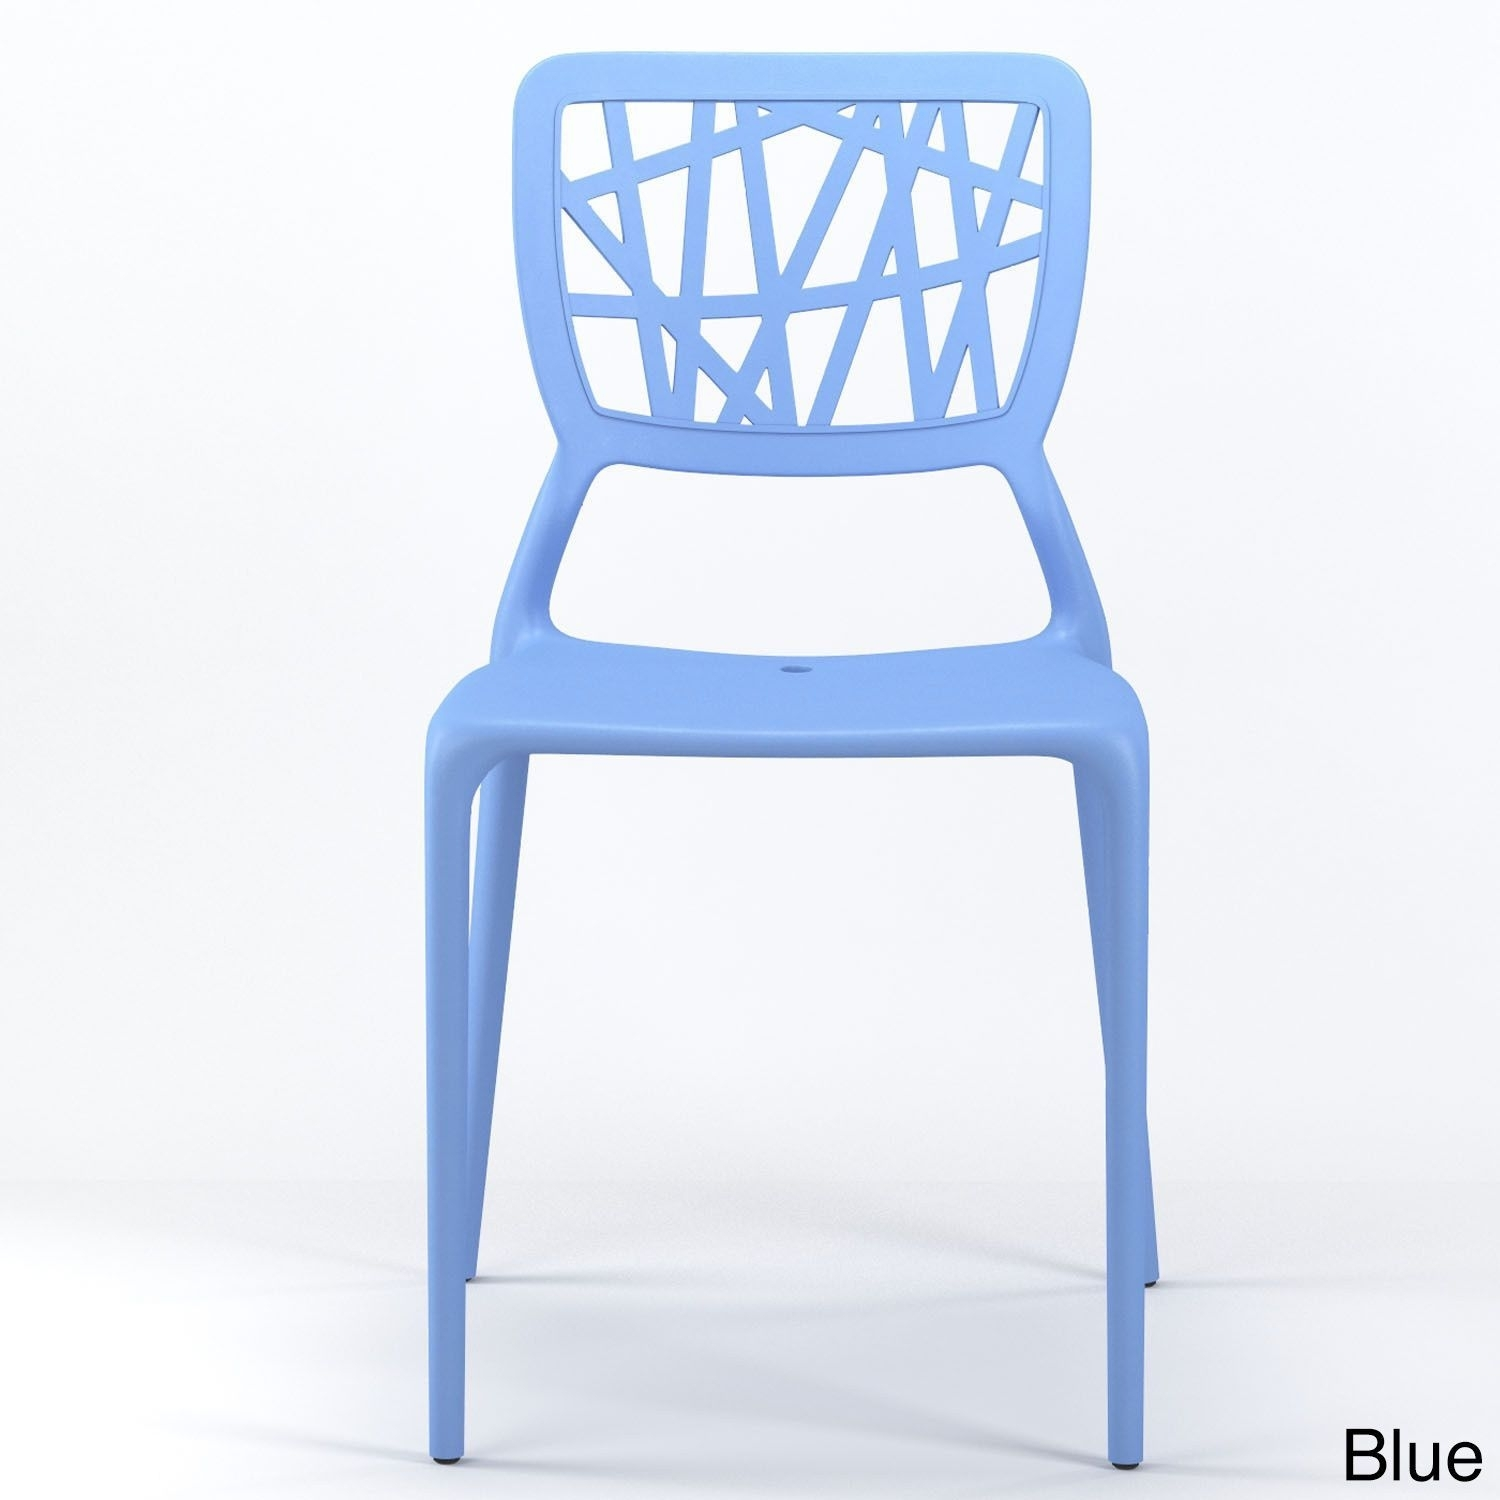 Moda Gibson Living Verdant Stackable Dining Side Chair (Blue), Patio Intended For Recent Moda Blue Side Chairs (View 12 of 20)